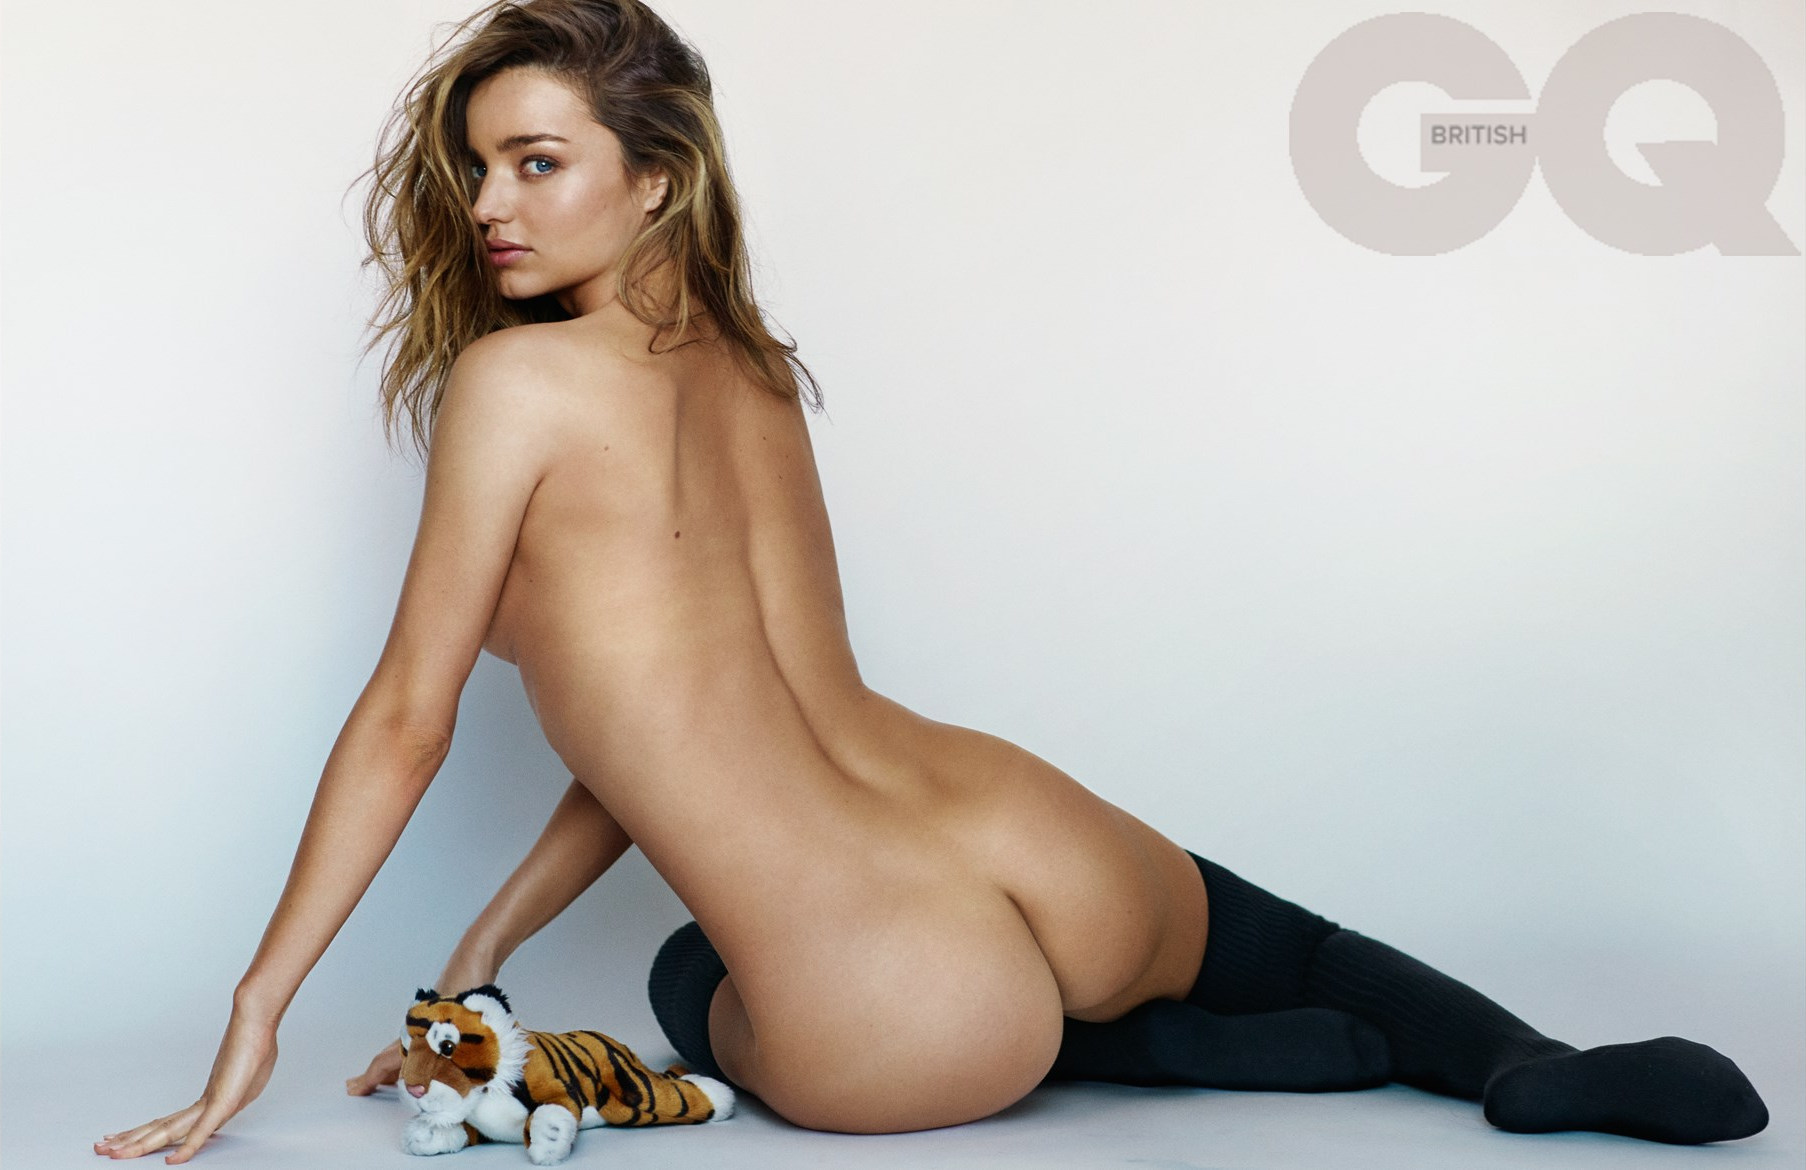 Miranda-Kerr-GQ-UK-Magazine-May-2014-9.jpg